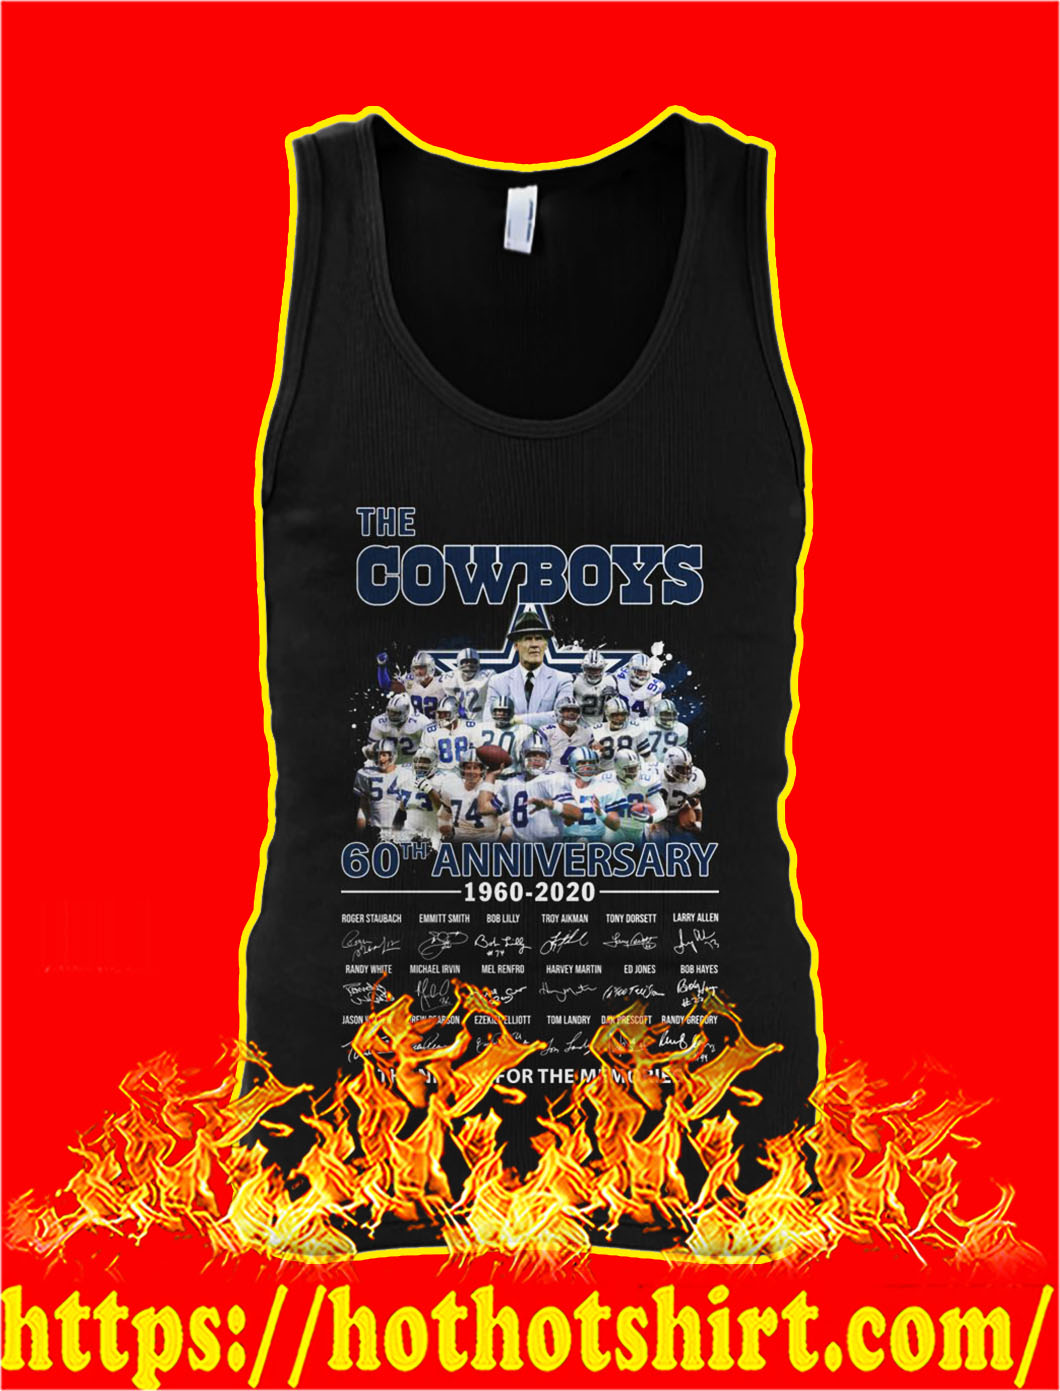 The cowboys 60th anniversary thank you for the memories tank top